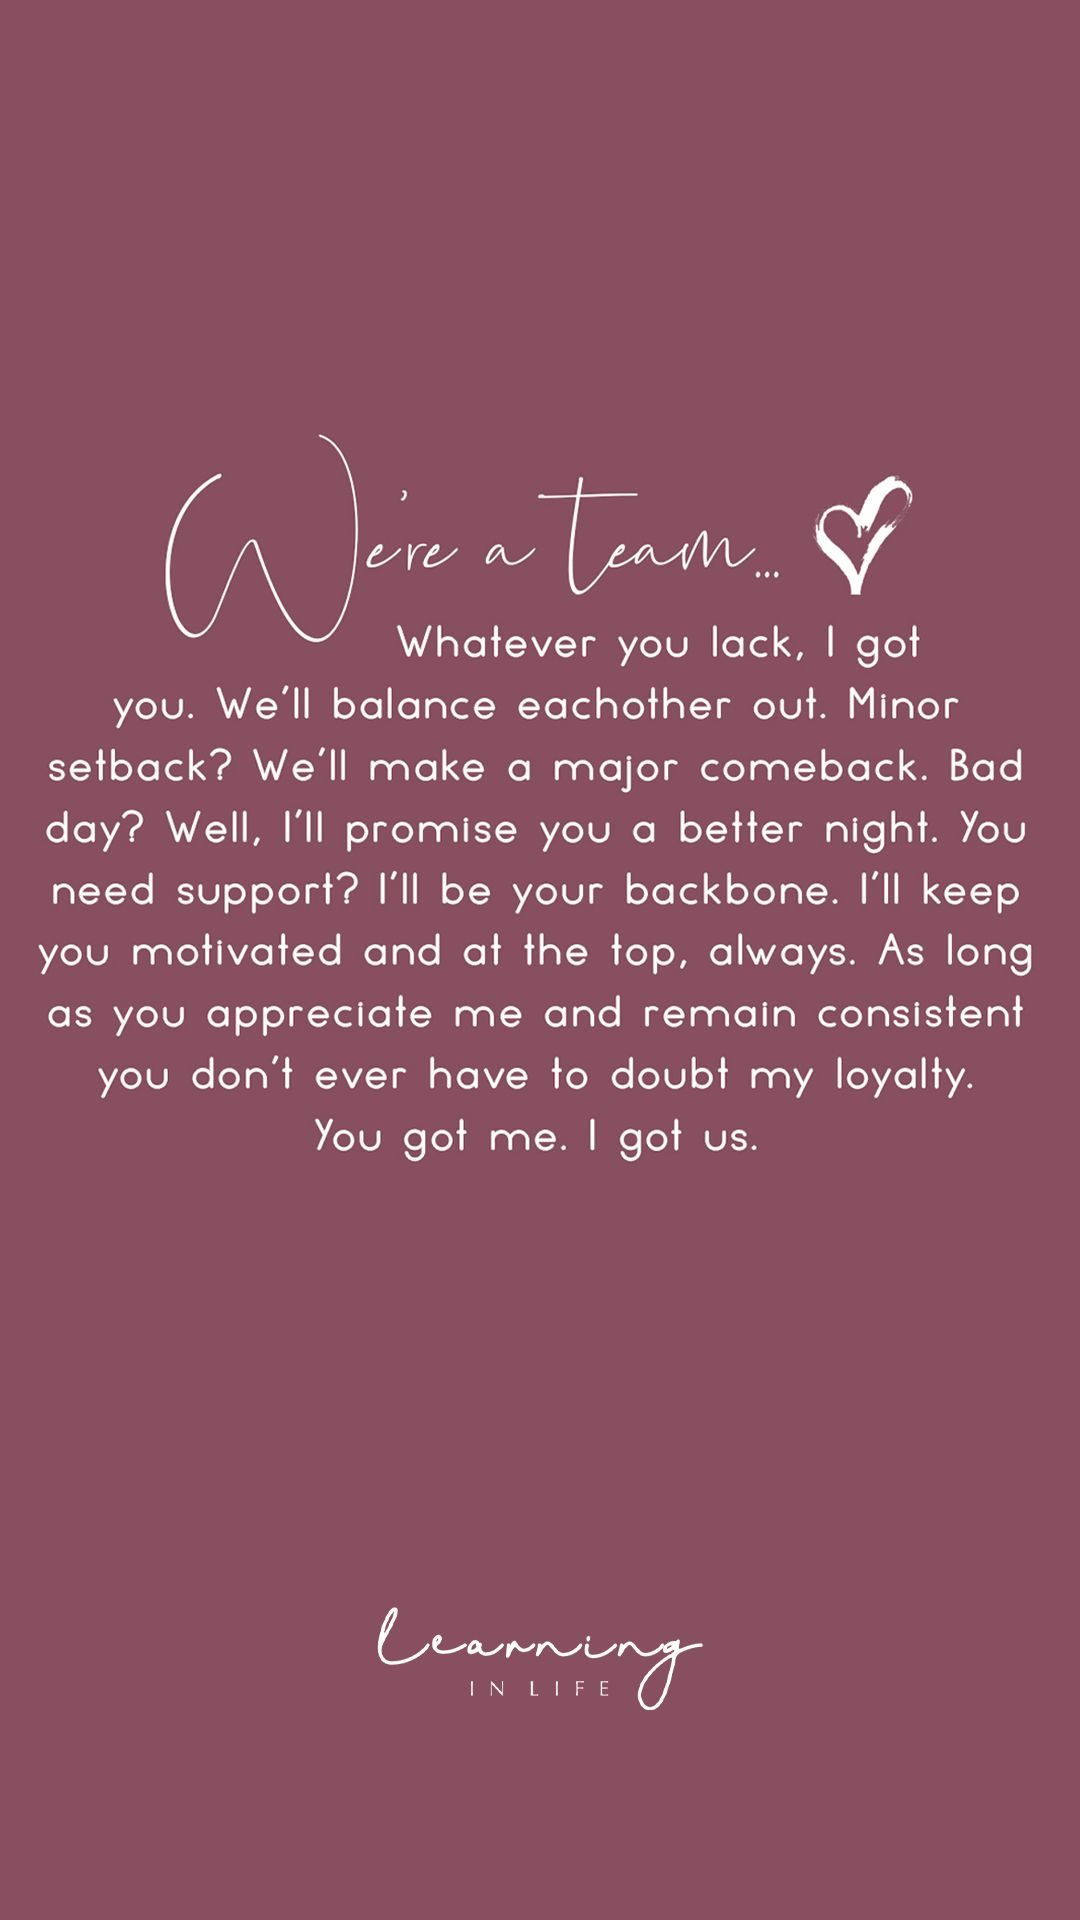 Love Quotes In 2020 Love Again Quotes Love Quotes Pretty Quotes